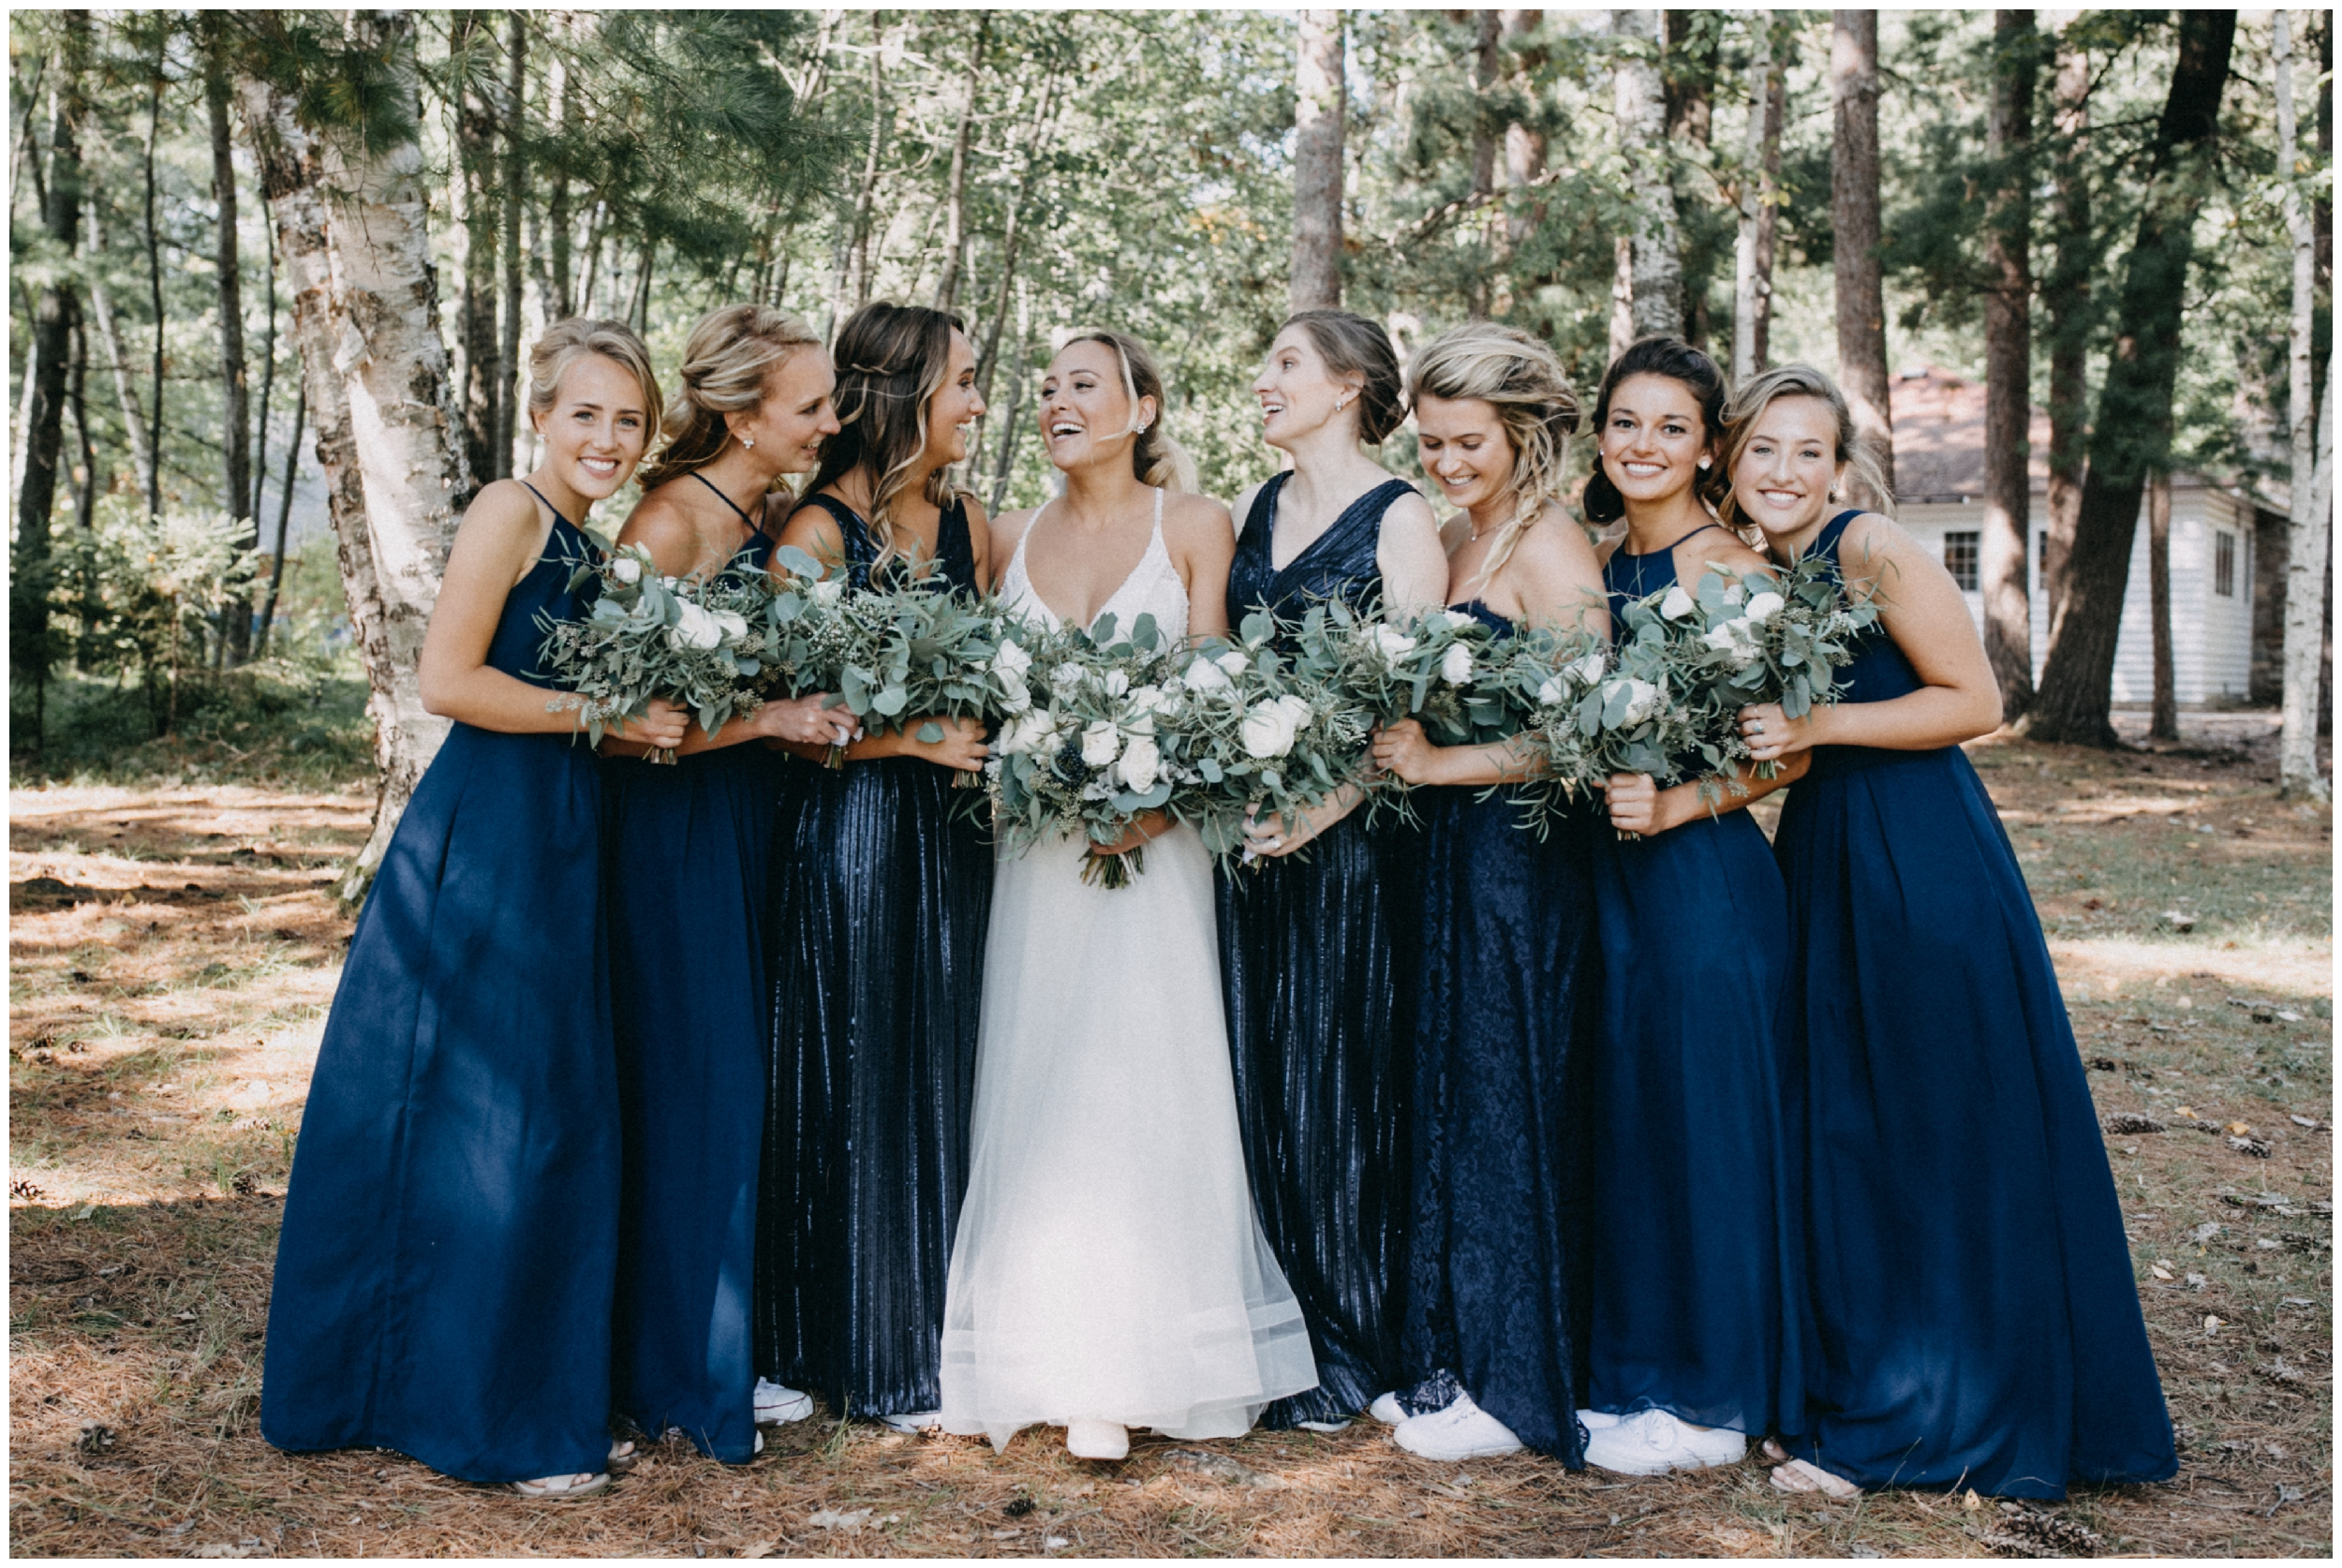 Natural and candid bridesmaid portrait at Camp Foley wedding photographed by Britt DeZeeuw